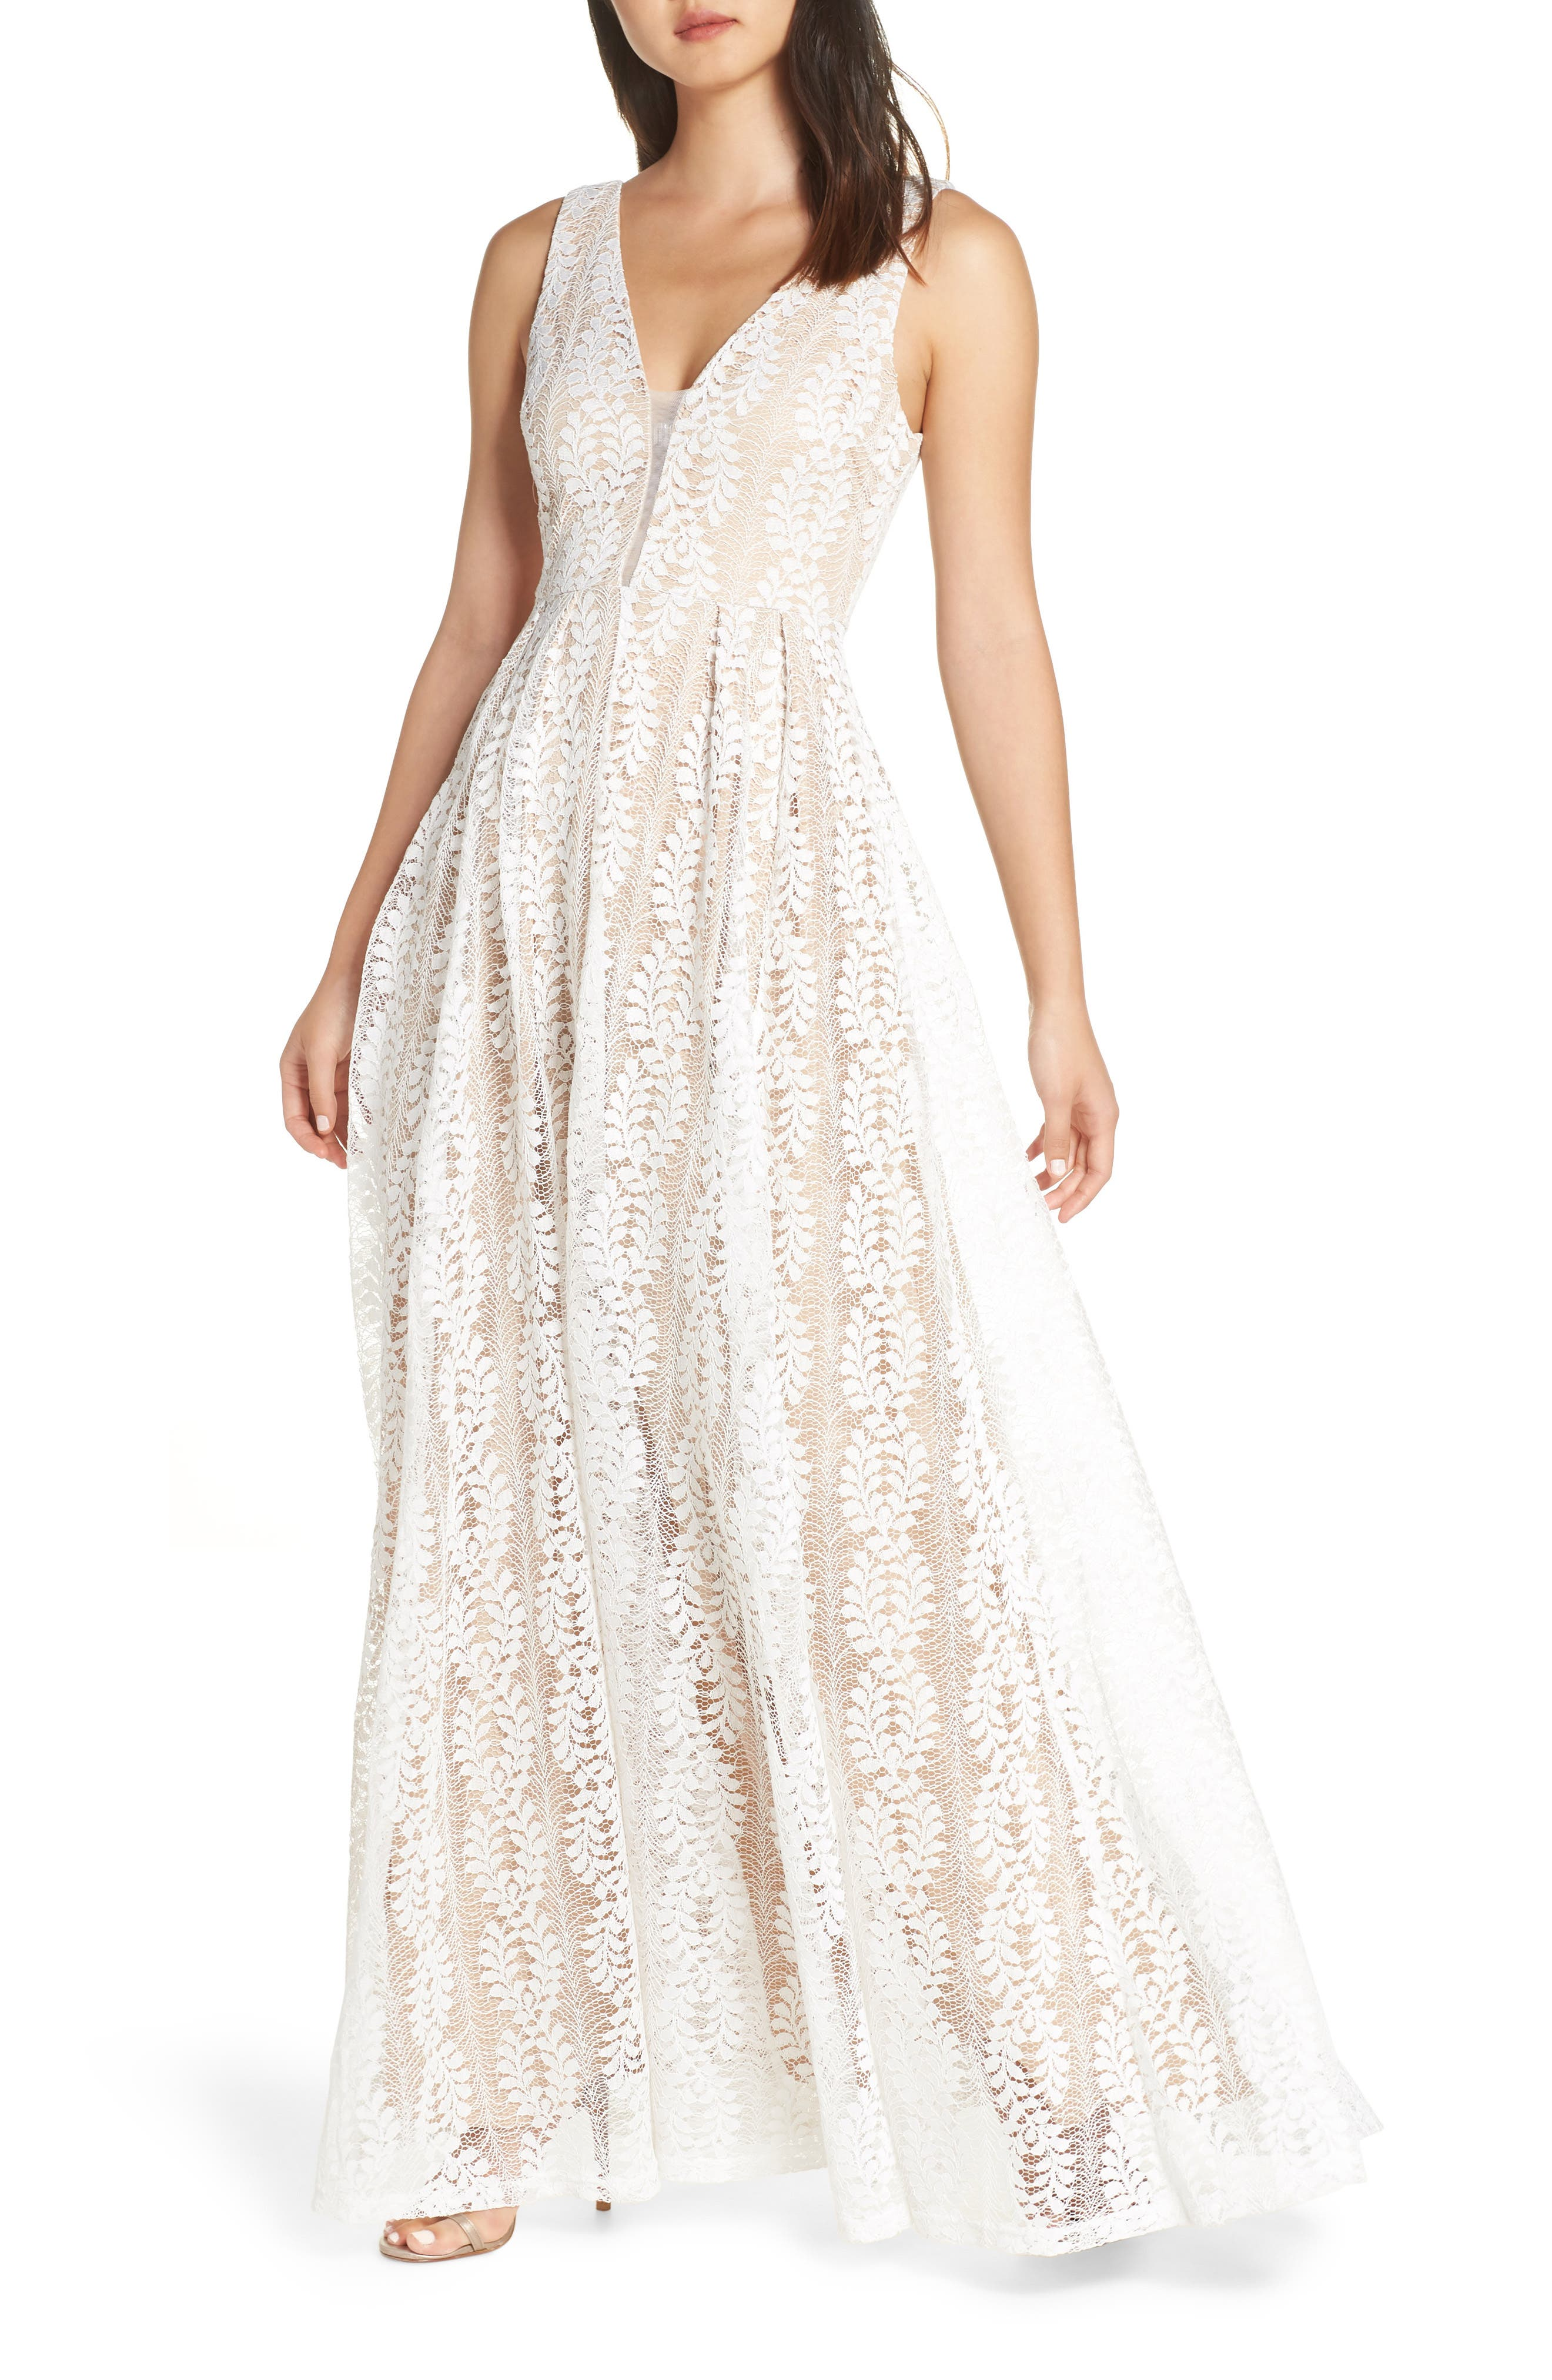 LULUS Eliana Lace V-Neck Gown, Main, color, WHITE/ NUDE